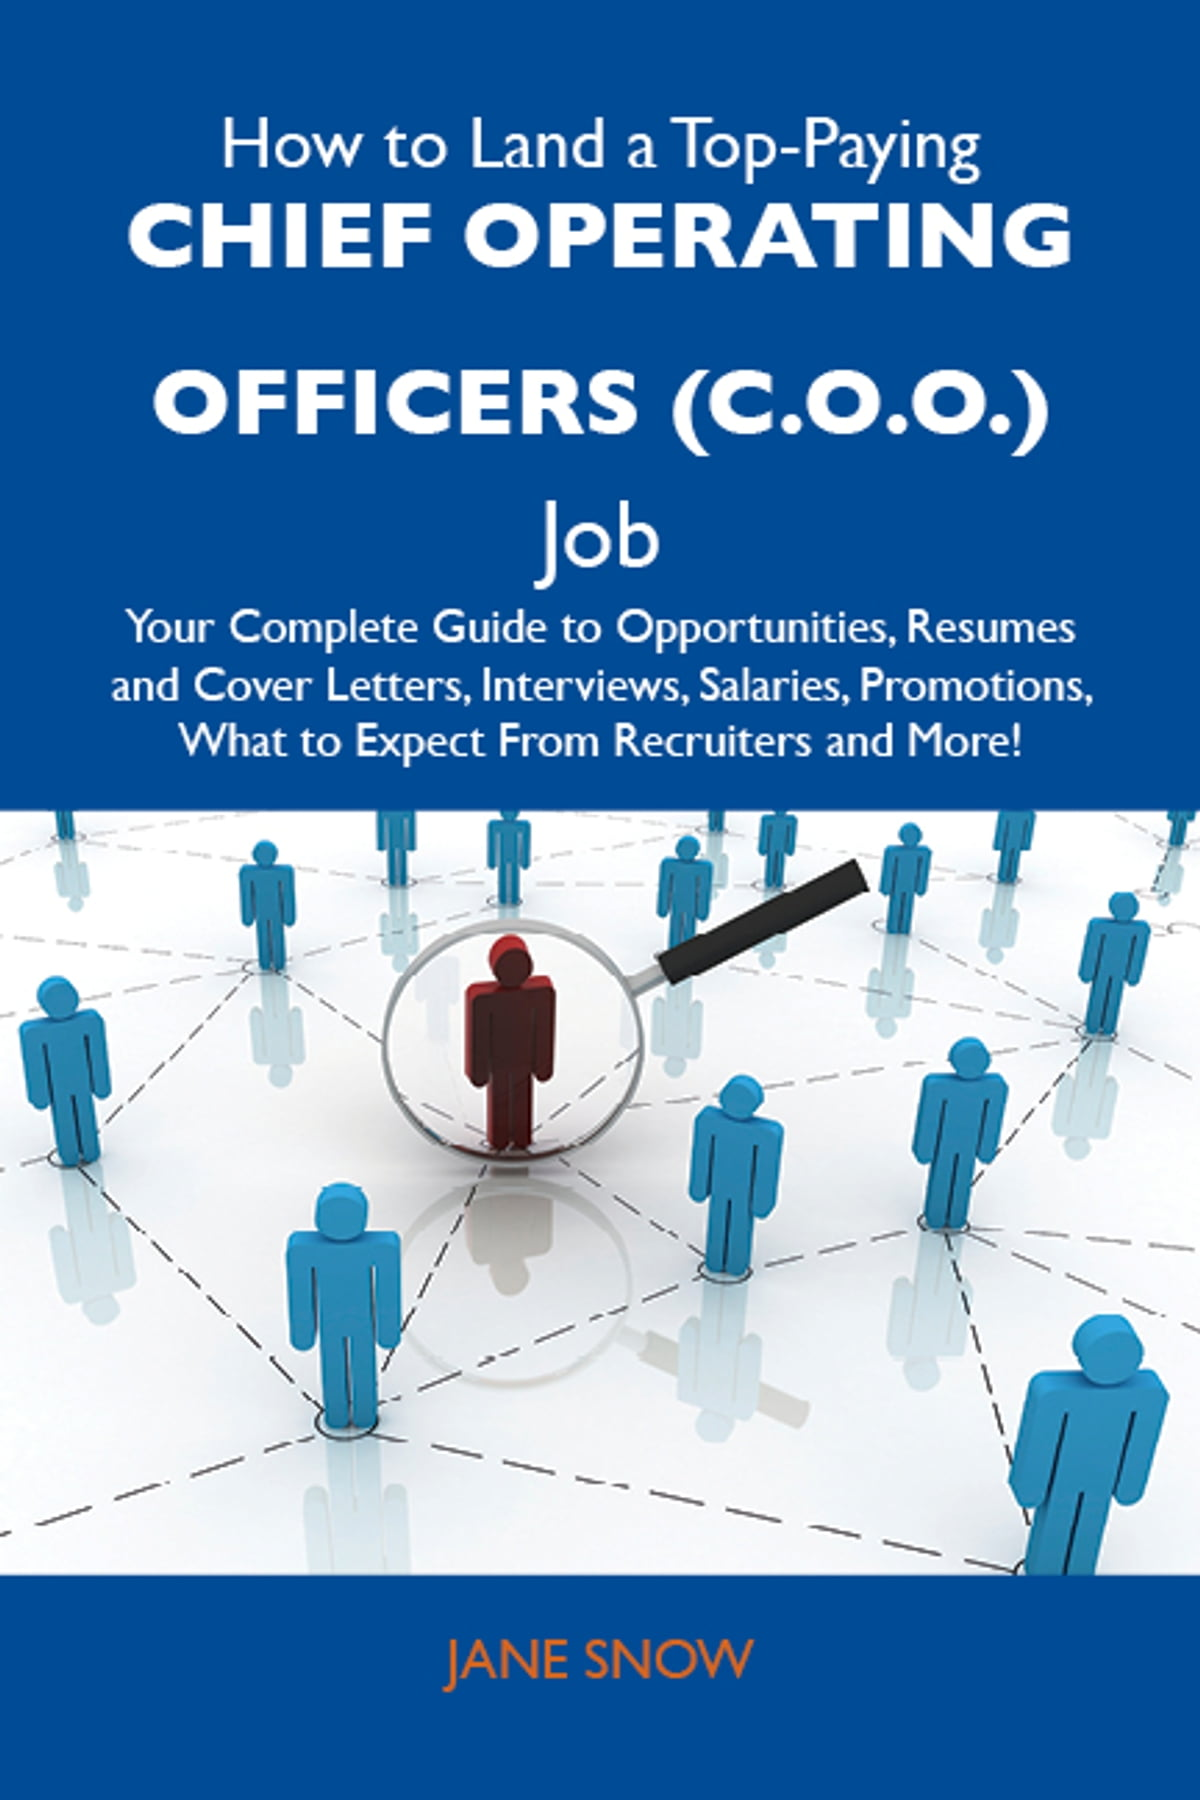 How to Land a Top-Paying Chief operating officers (C.O.O.) Job: Your ...